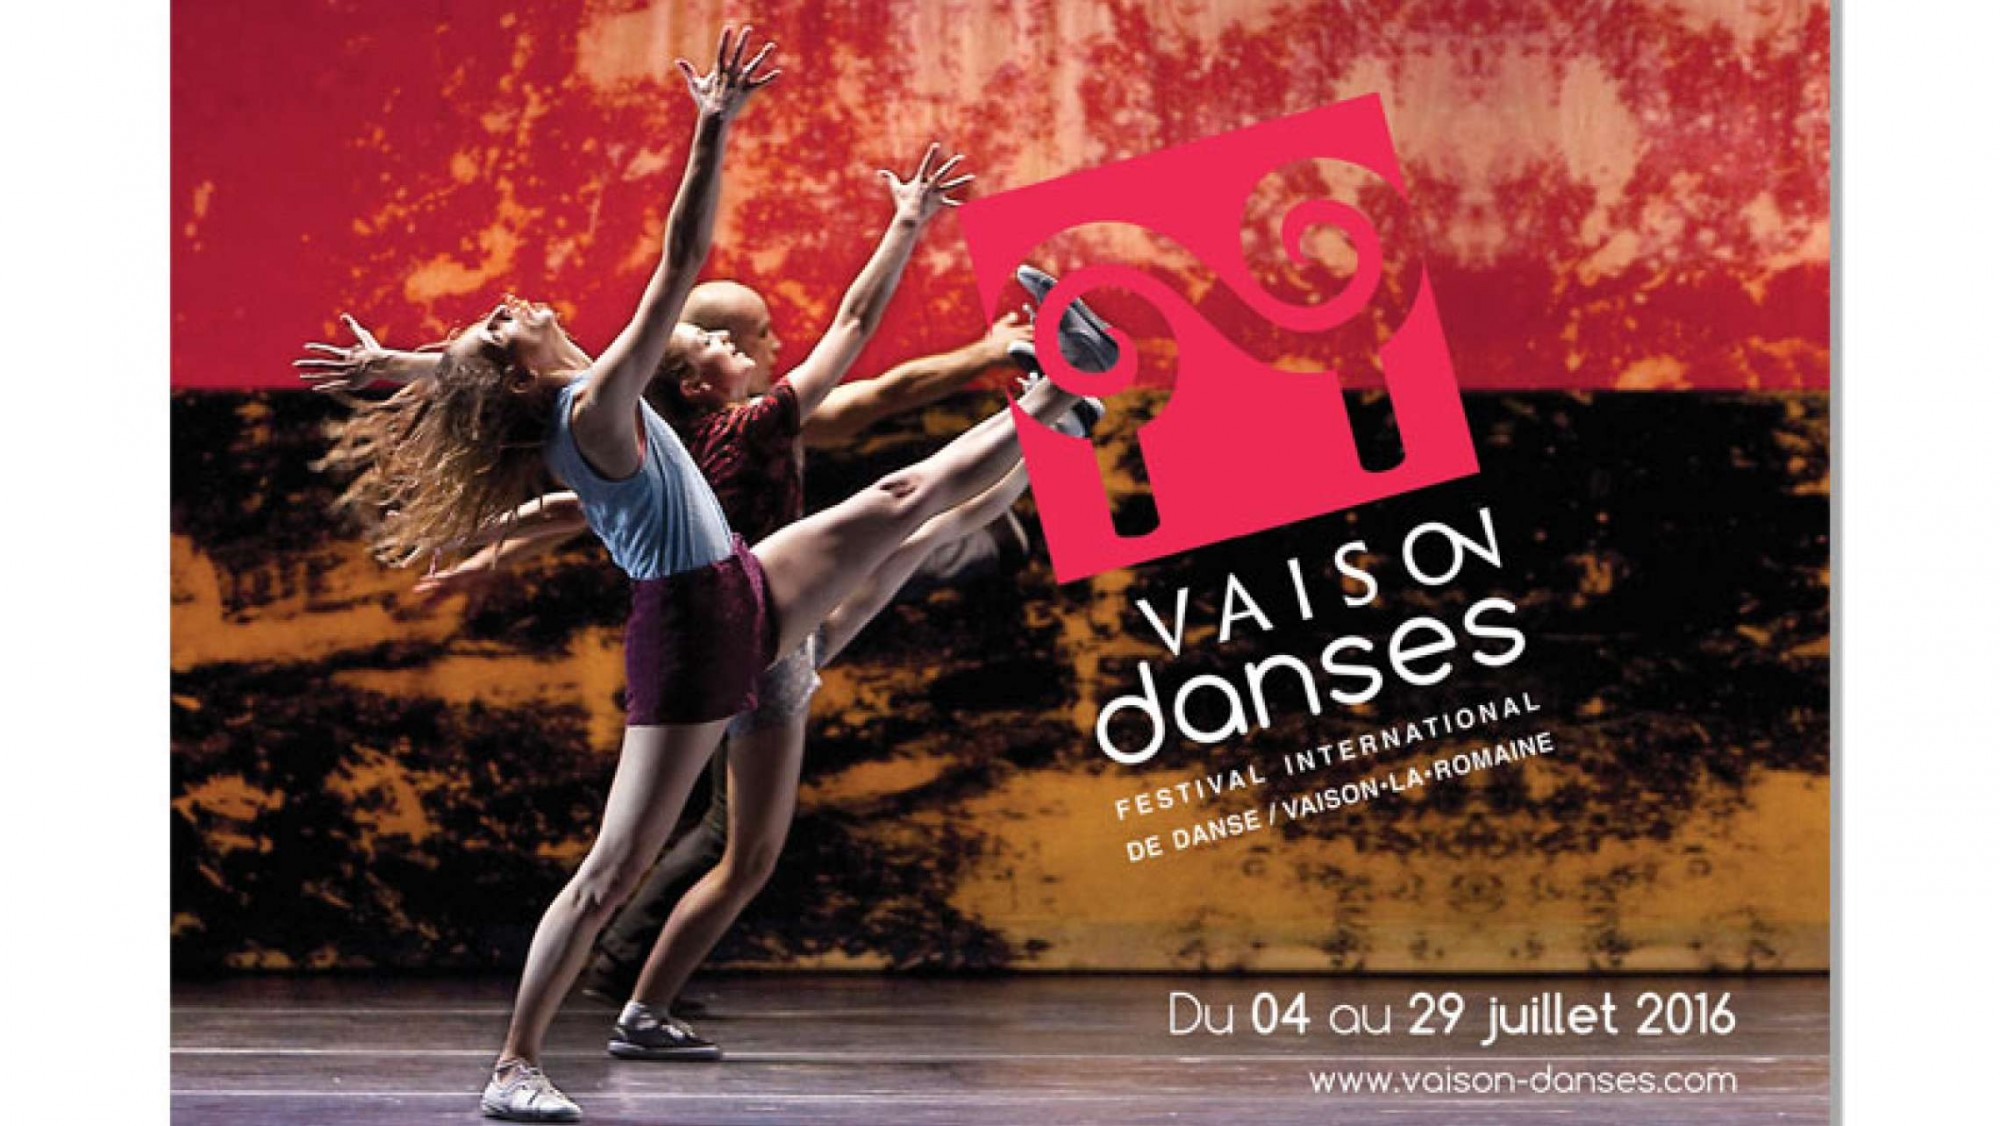 VAISON DANSES, le Festival International de danse de Vaison-la-Romaine